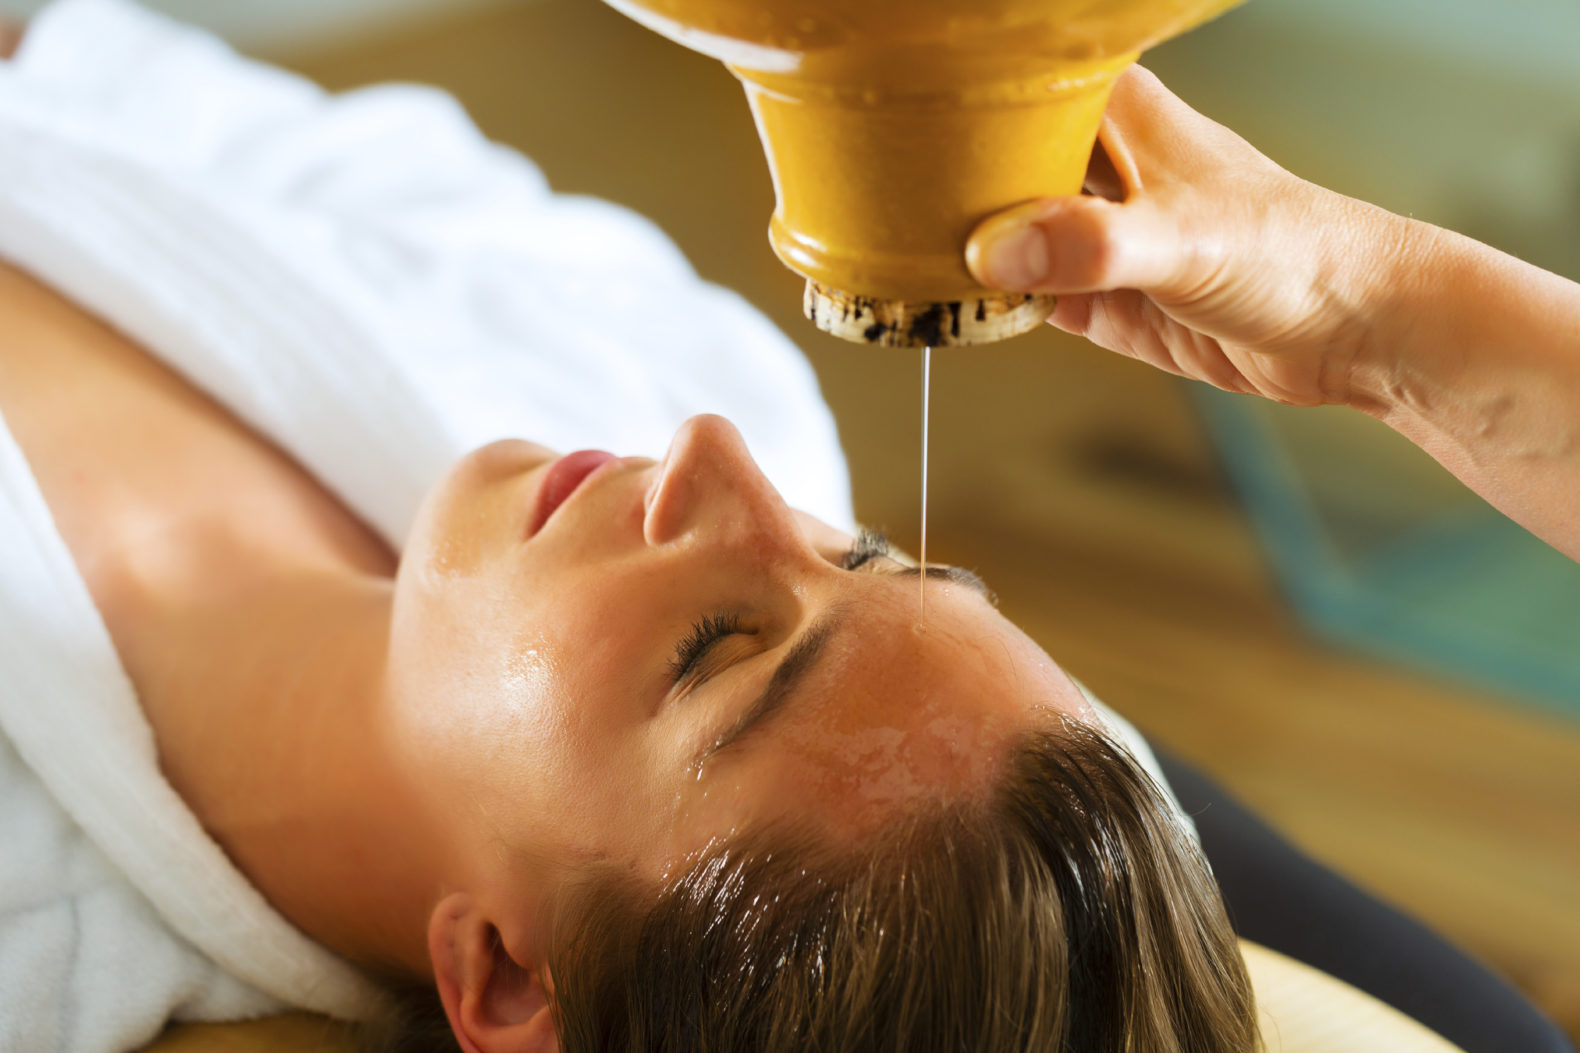 shirodhara-ayurveda-oil-cleansing-treatment-healing-sukhavati-hotel-retreat-bali-asia-1.jpg